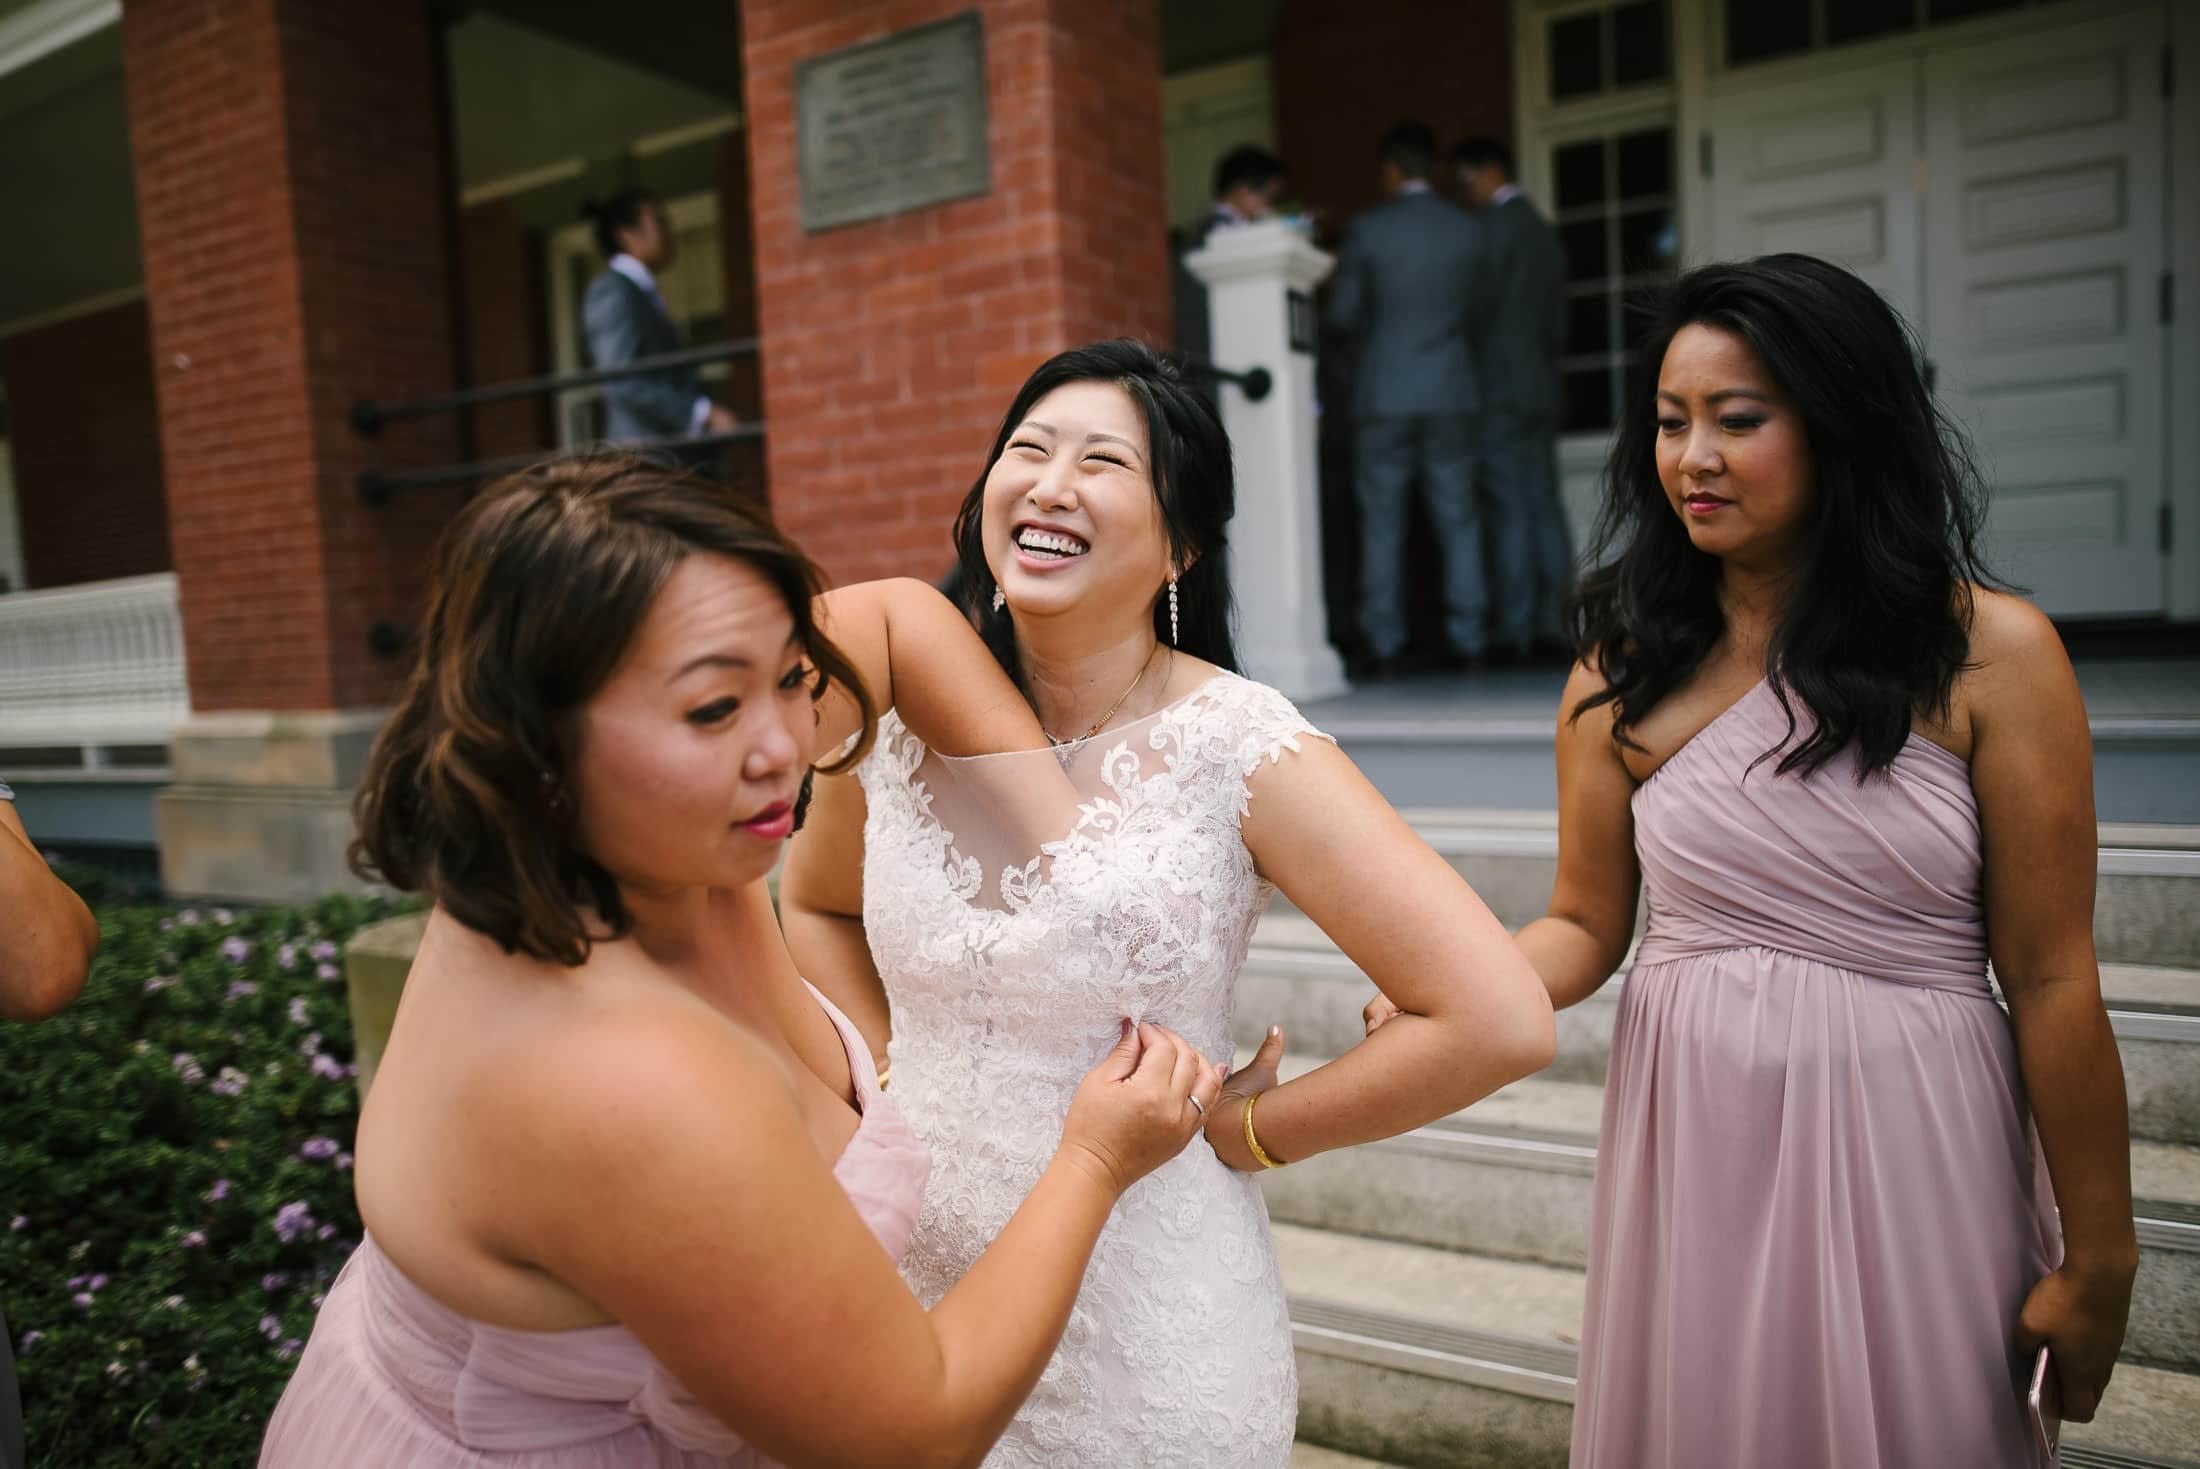 Goofy Presidio Lodge Wedding pic